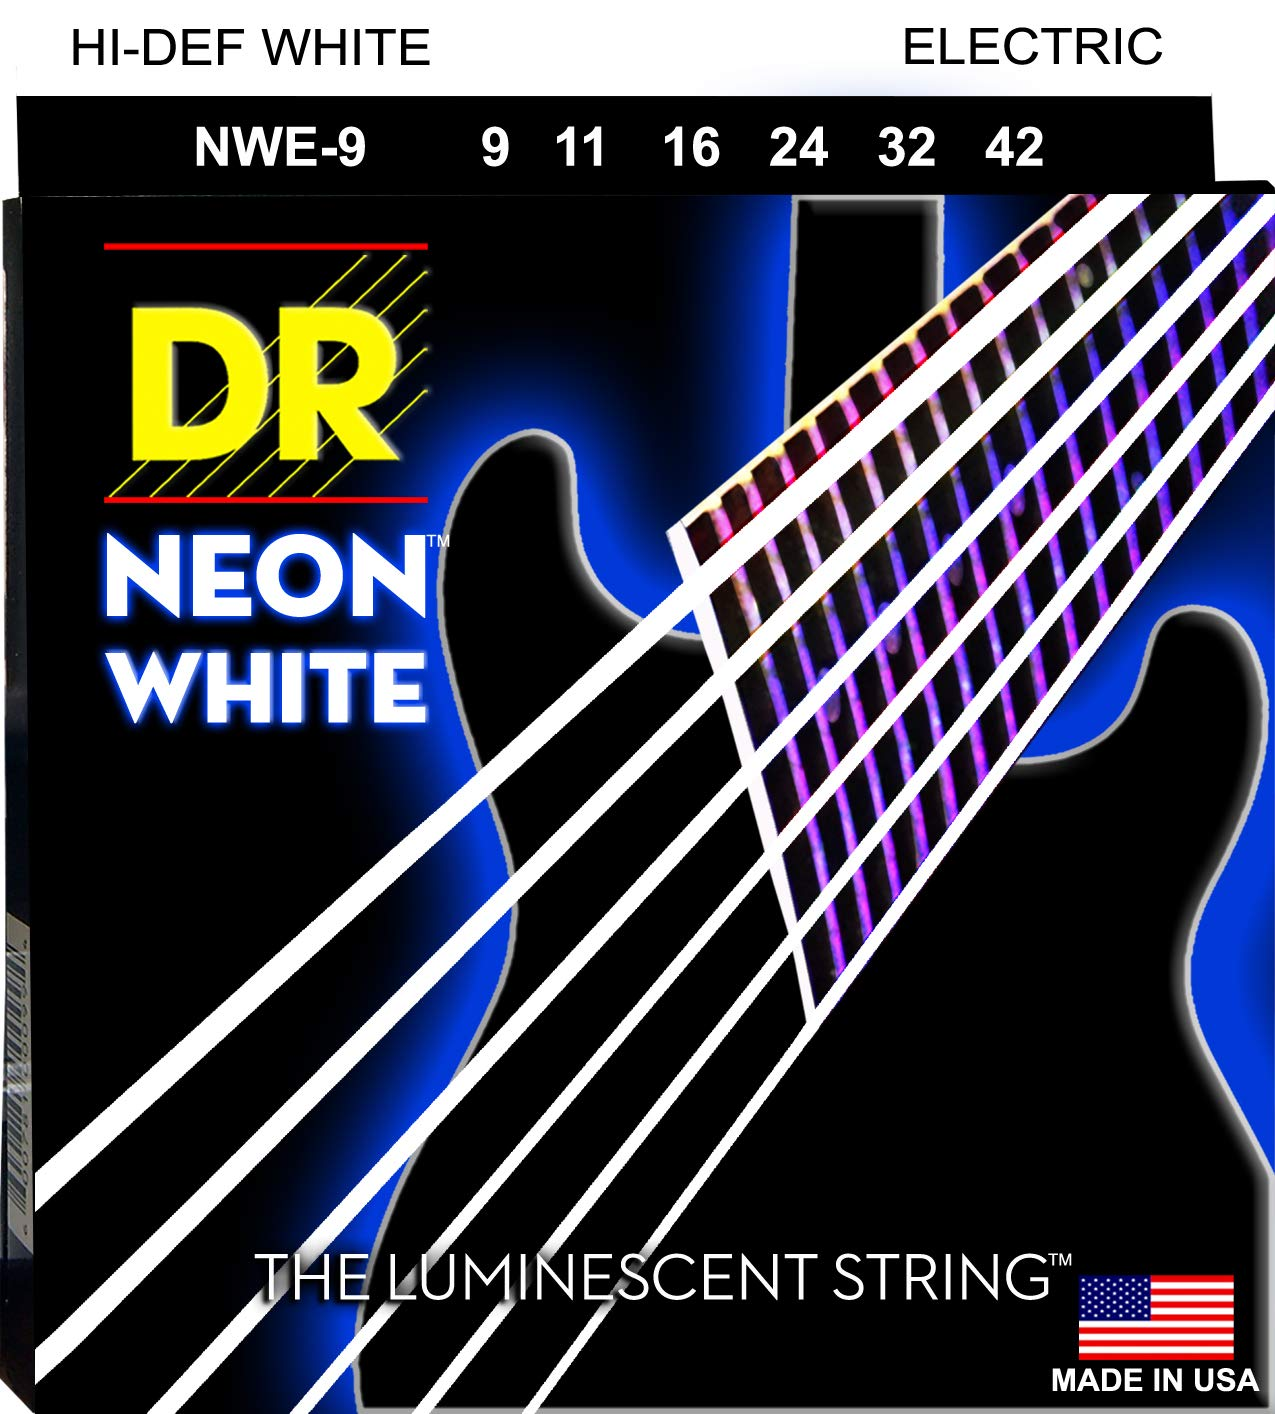 Cheap DR Strings HI-DEF NEON Electric Guitar Strings (NWE-9) Black Friday & Cyber Monday 2019